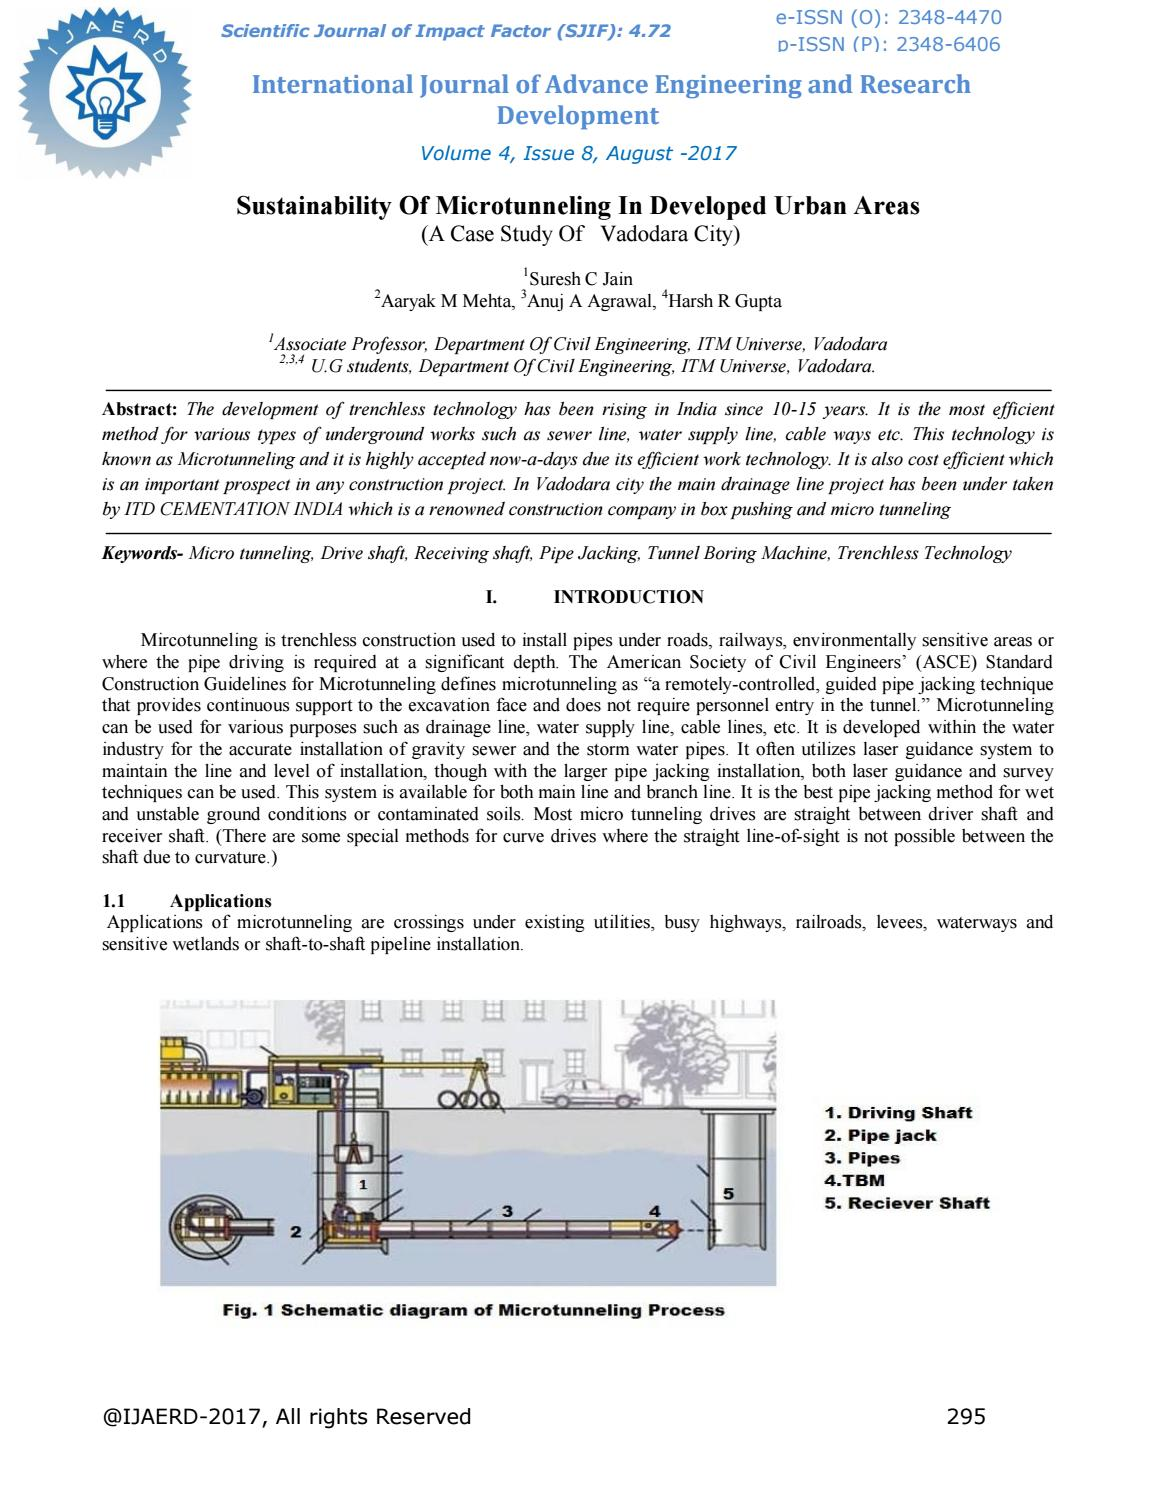 Sustainability of microtunneling in developed urban areas